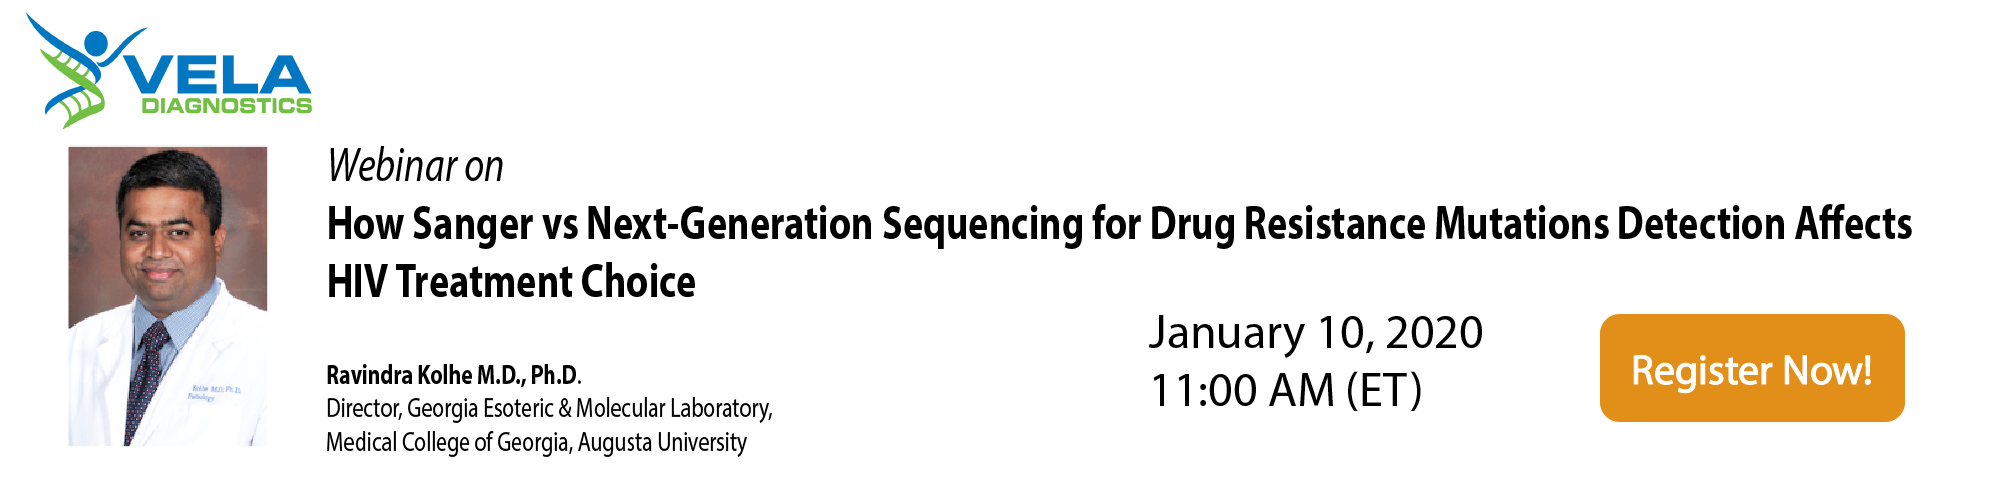 How Sanger vs Next-Generation Sequencing for Drug Resistance Mutations Detection